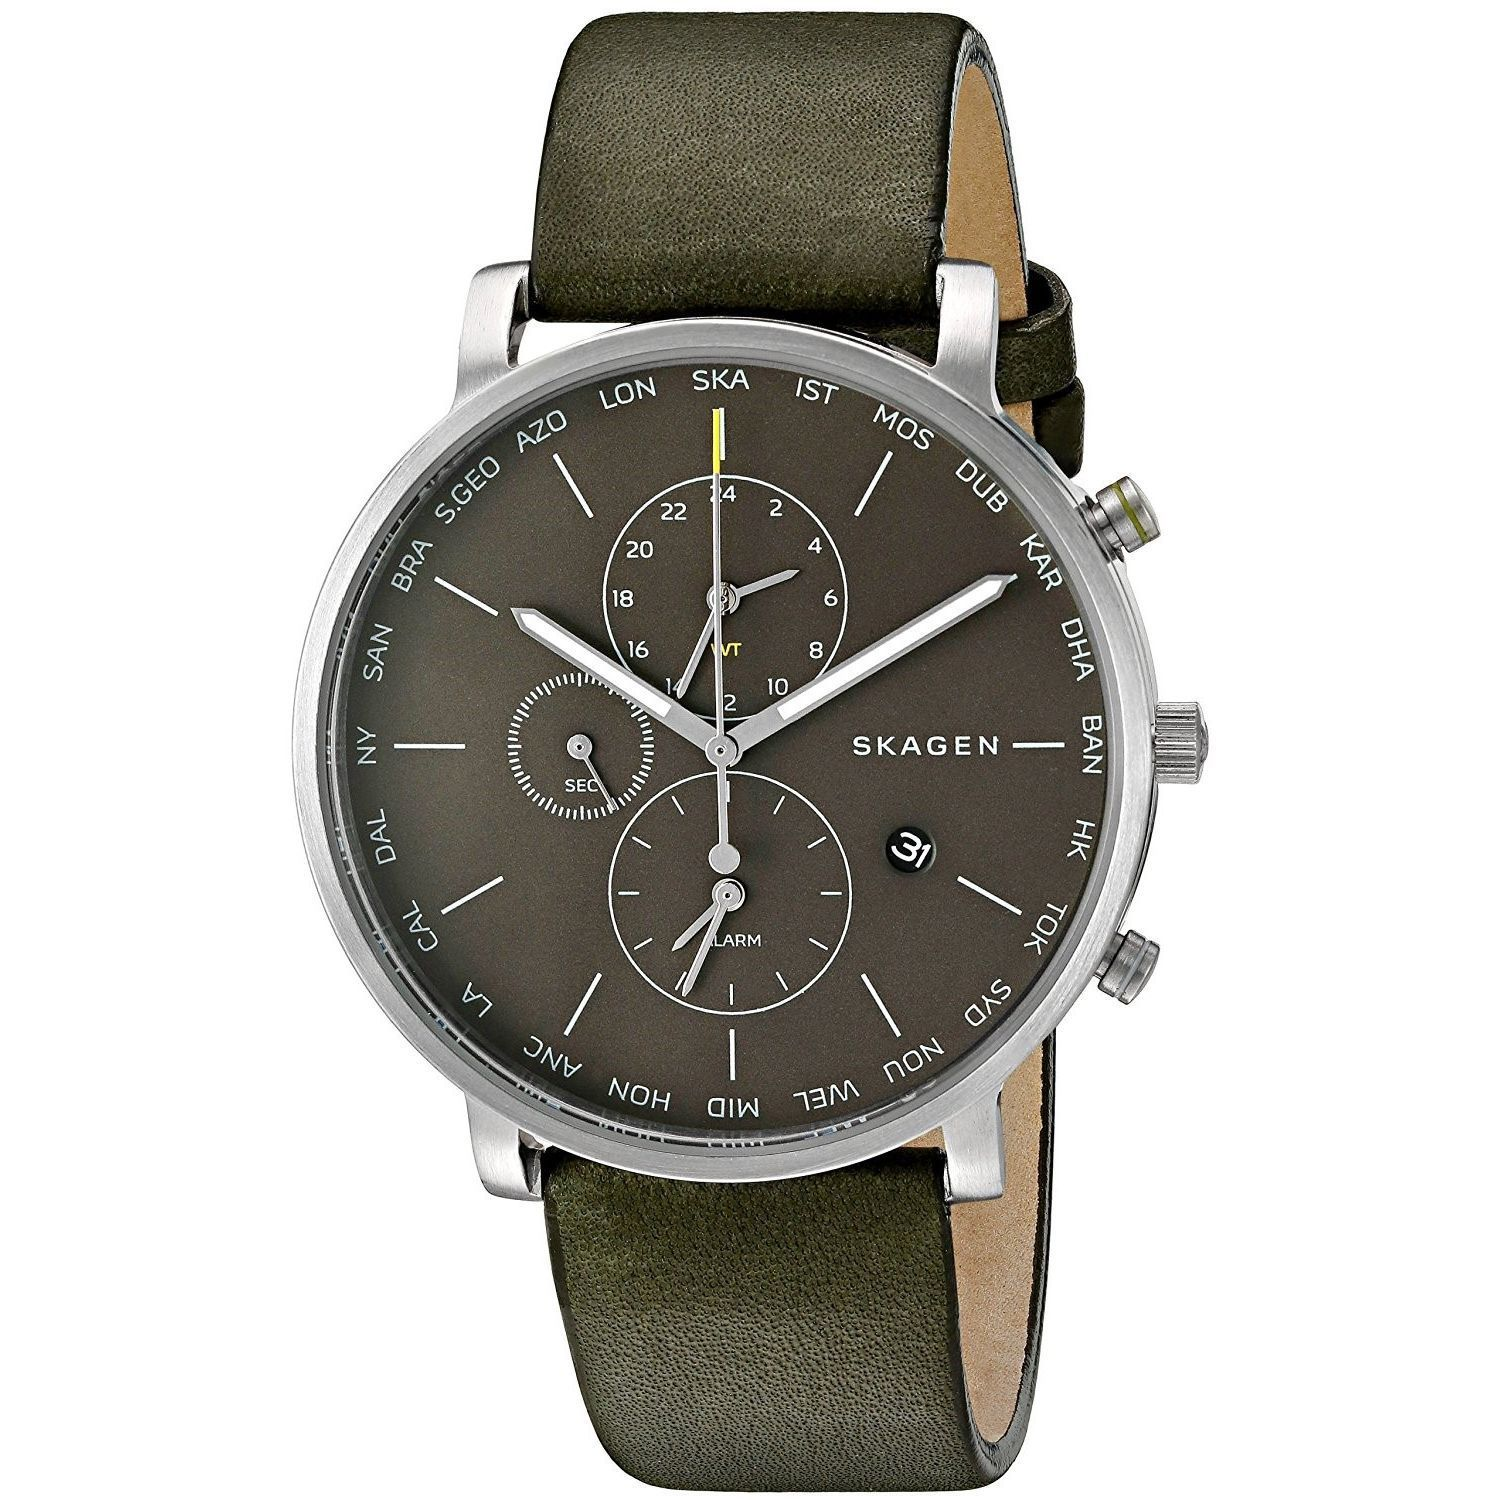 Skagen Men's SKW6298 'Hagen World Time and Alarm' Chronog...